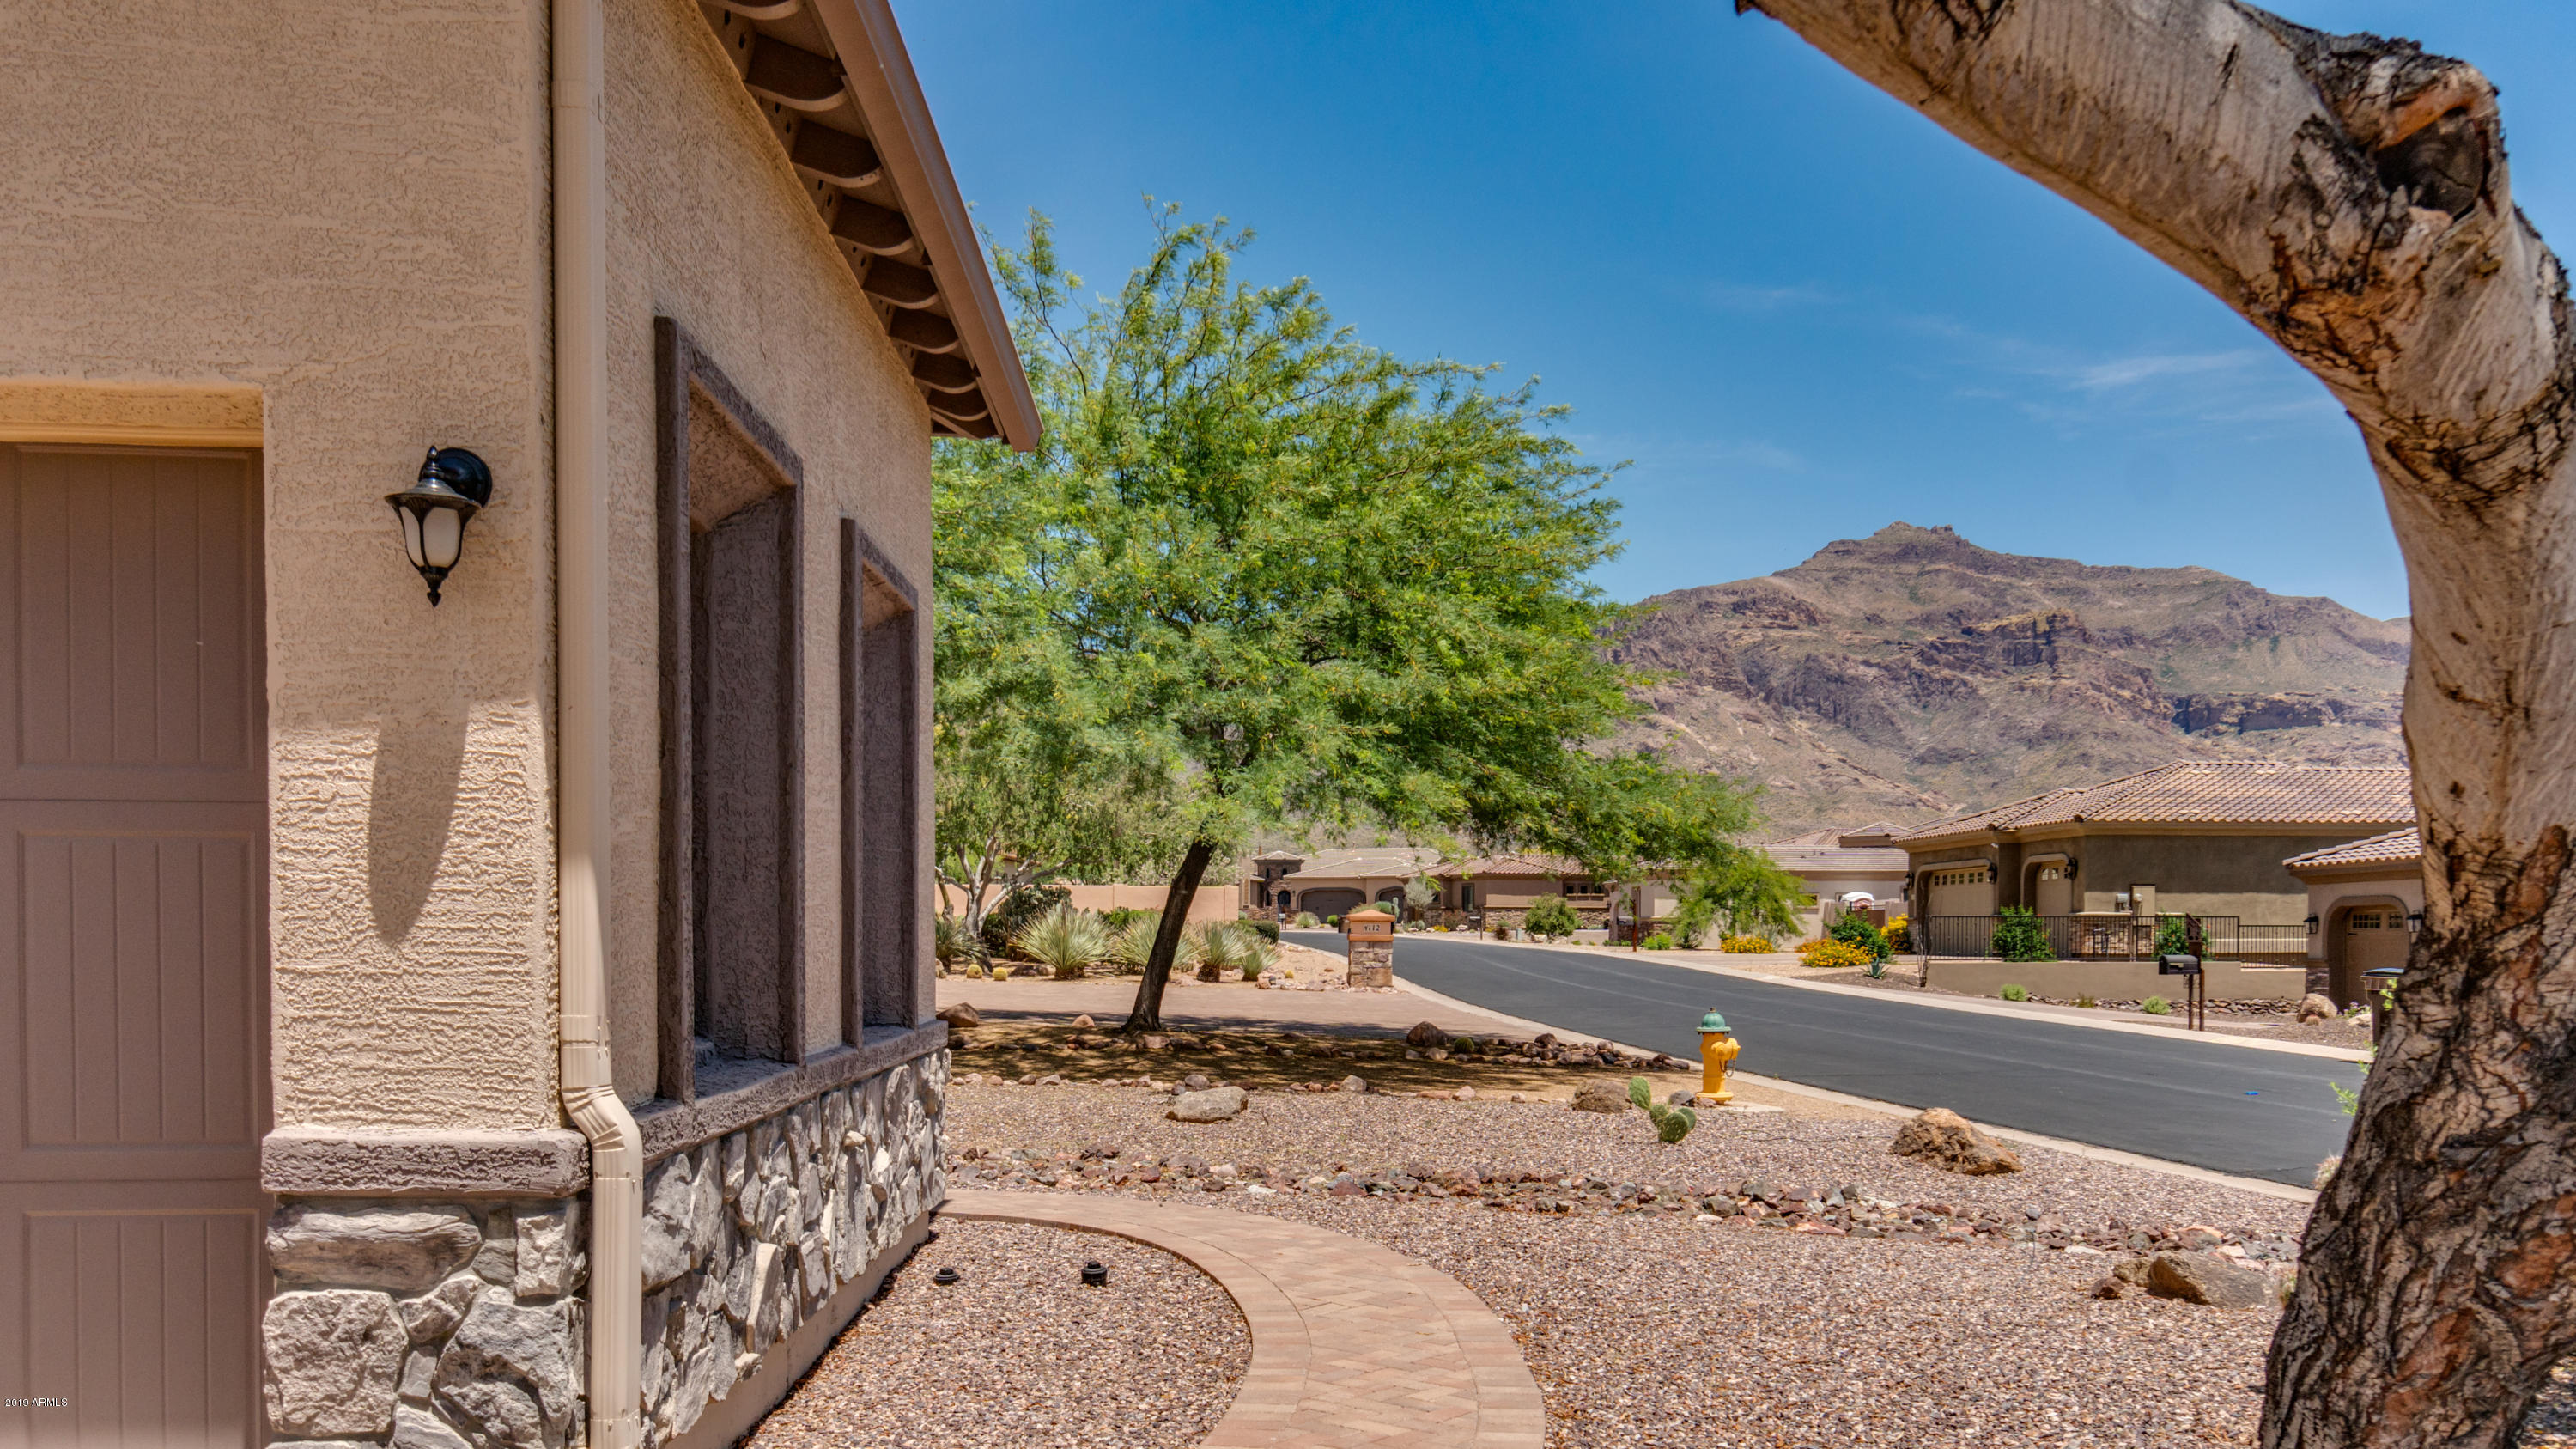 MLS 5927283 4144 S WILLOW SPRINGS Trail, Gold Canyon, AZ 85118 Gold Canyon AZ Mountain Whisper